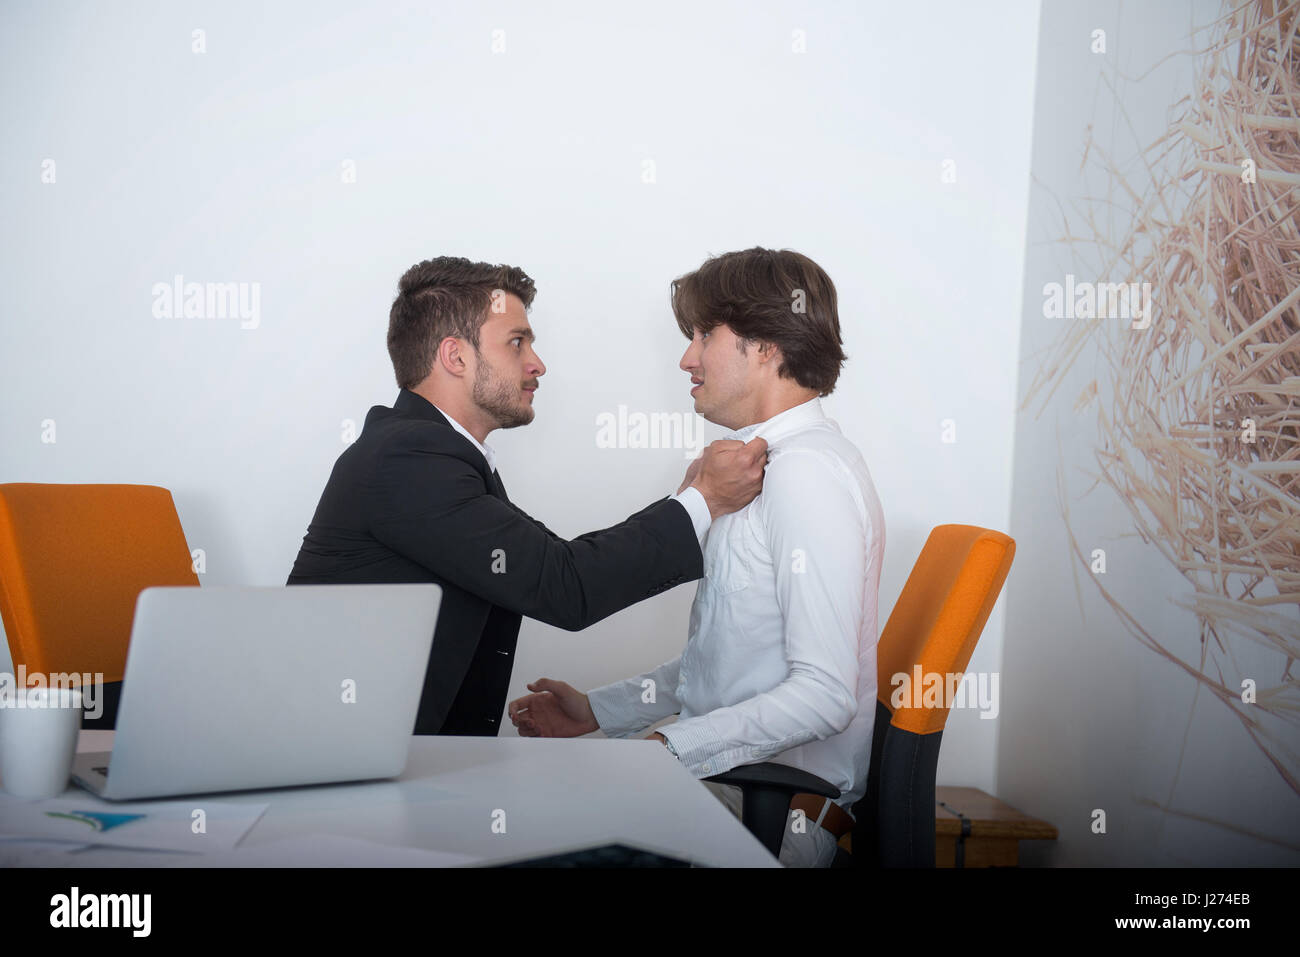 Two angry business colleagues during an argument - Stock Image